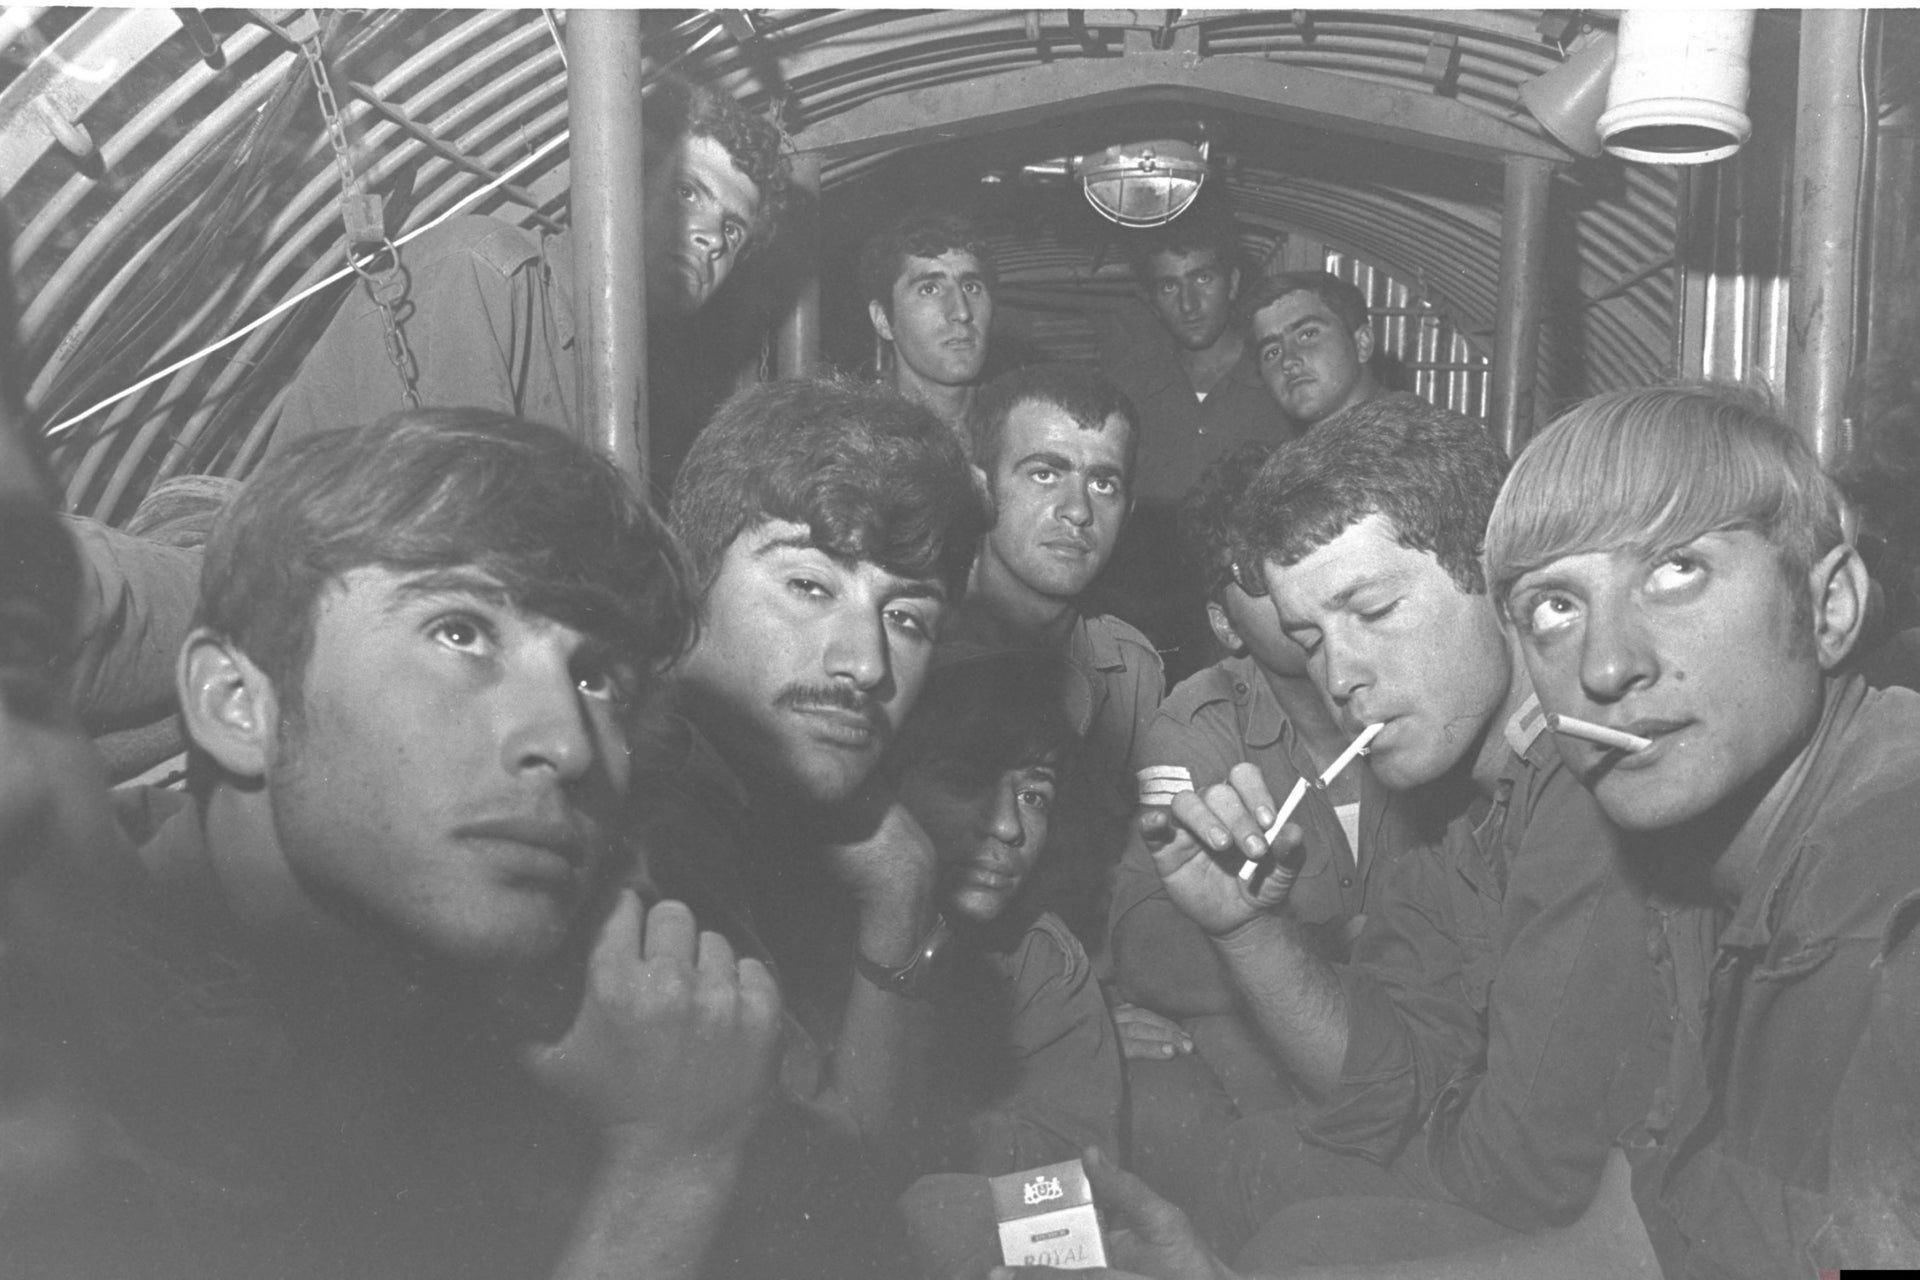 Israeli soldiers sitting in a bunker near the Suez Canal during the War of Attrition.